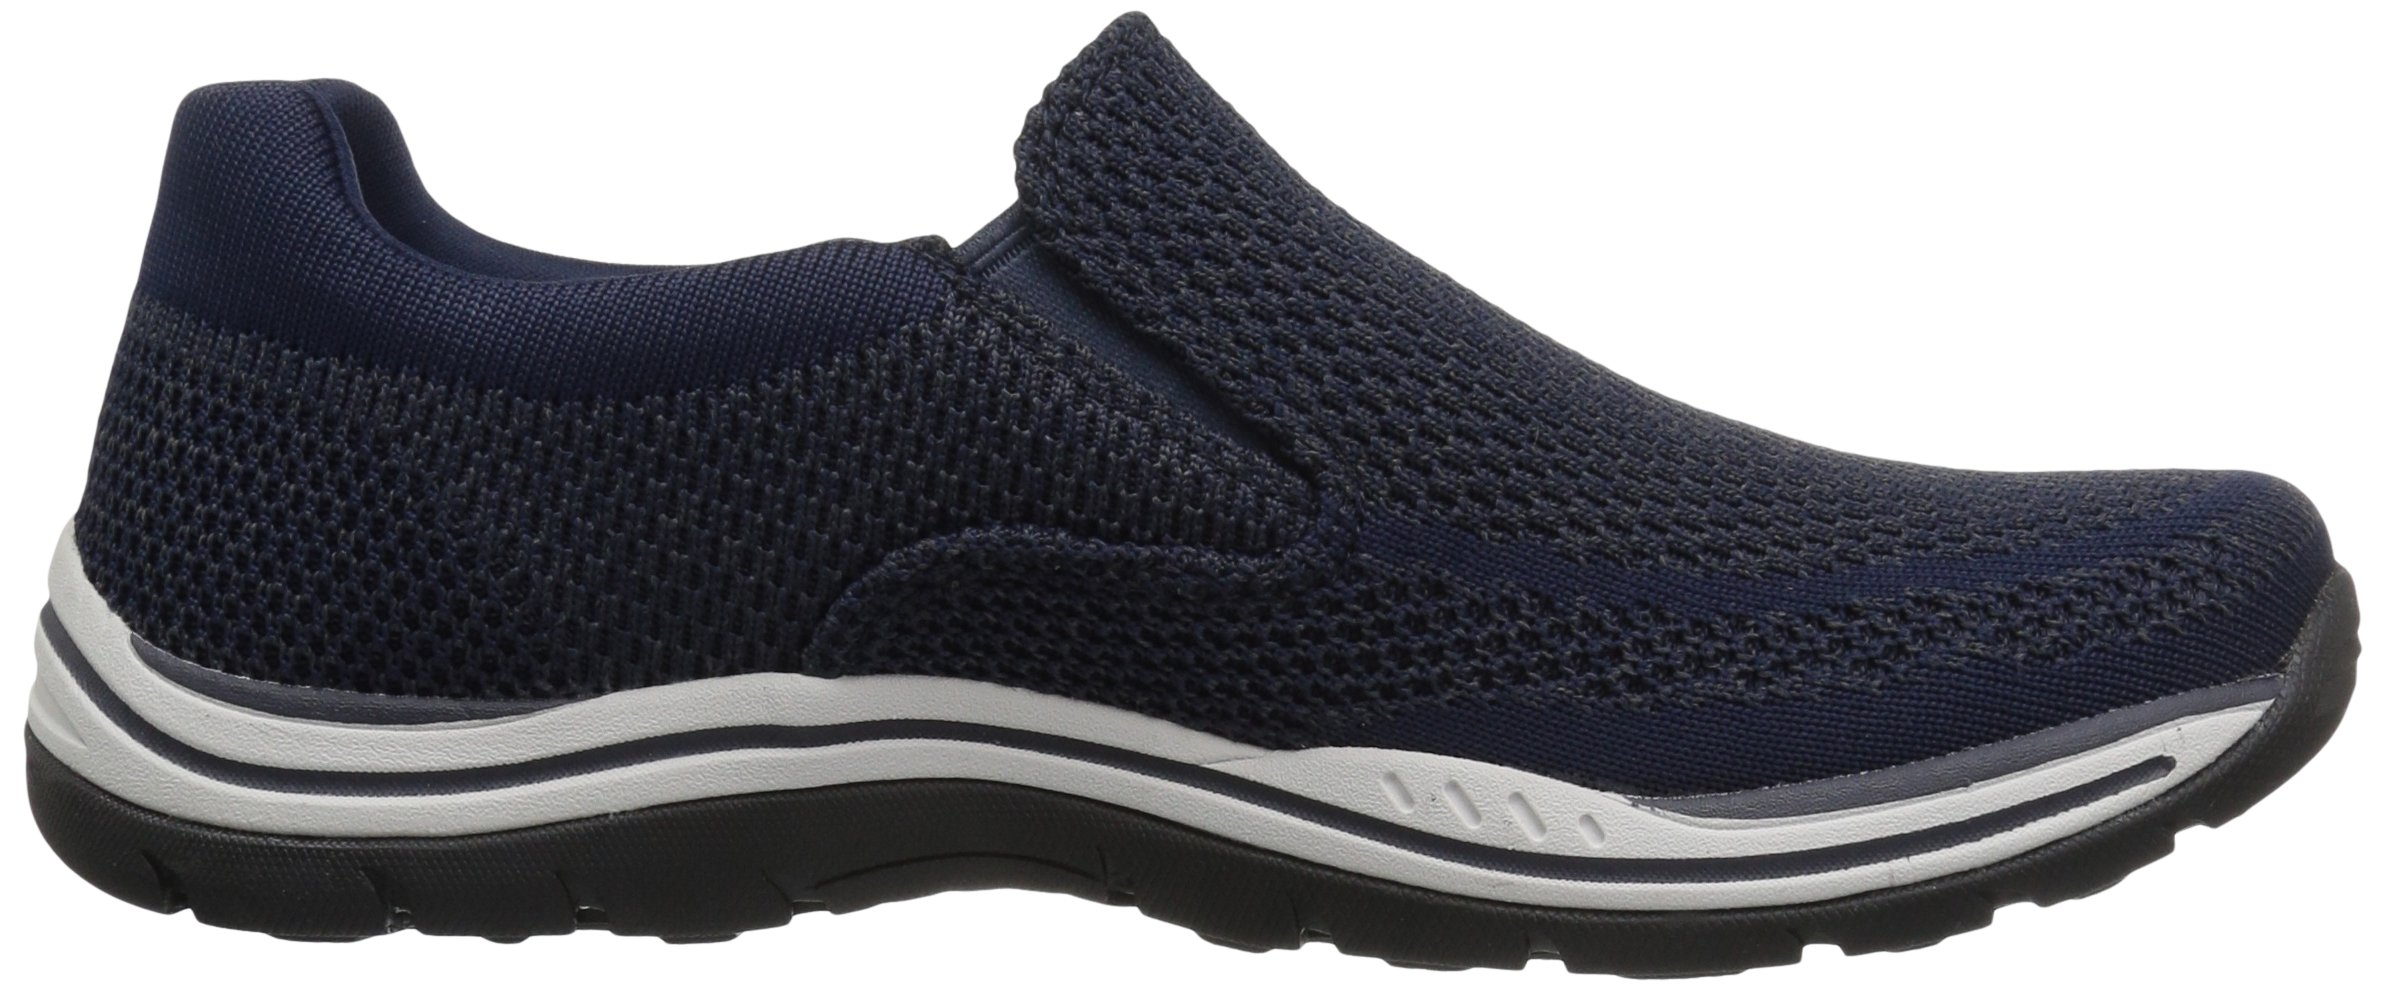 100% authentic c2872 c16b0 Skechers USA Men s Expected Gomel Slip-on Loafer, Navy, 10 M US -  65086-NVY-SBC   Loafers   Slip-Ons   Clothing, Shoes   Jewelry - tibs